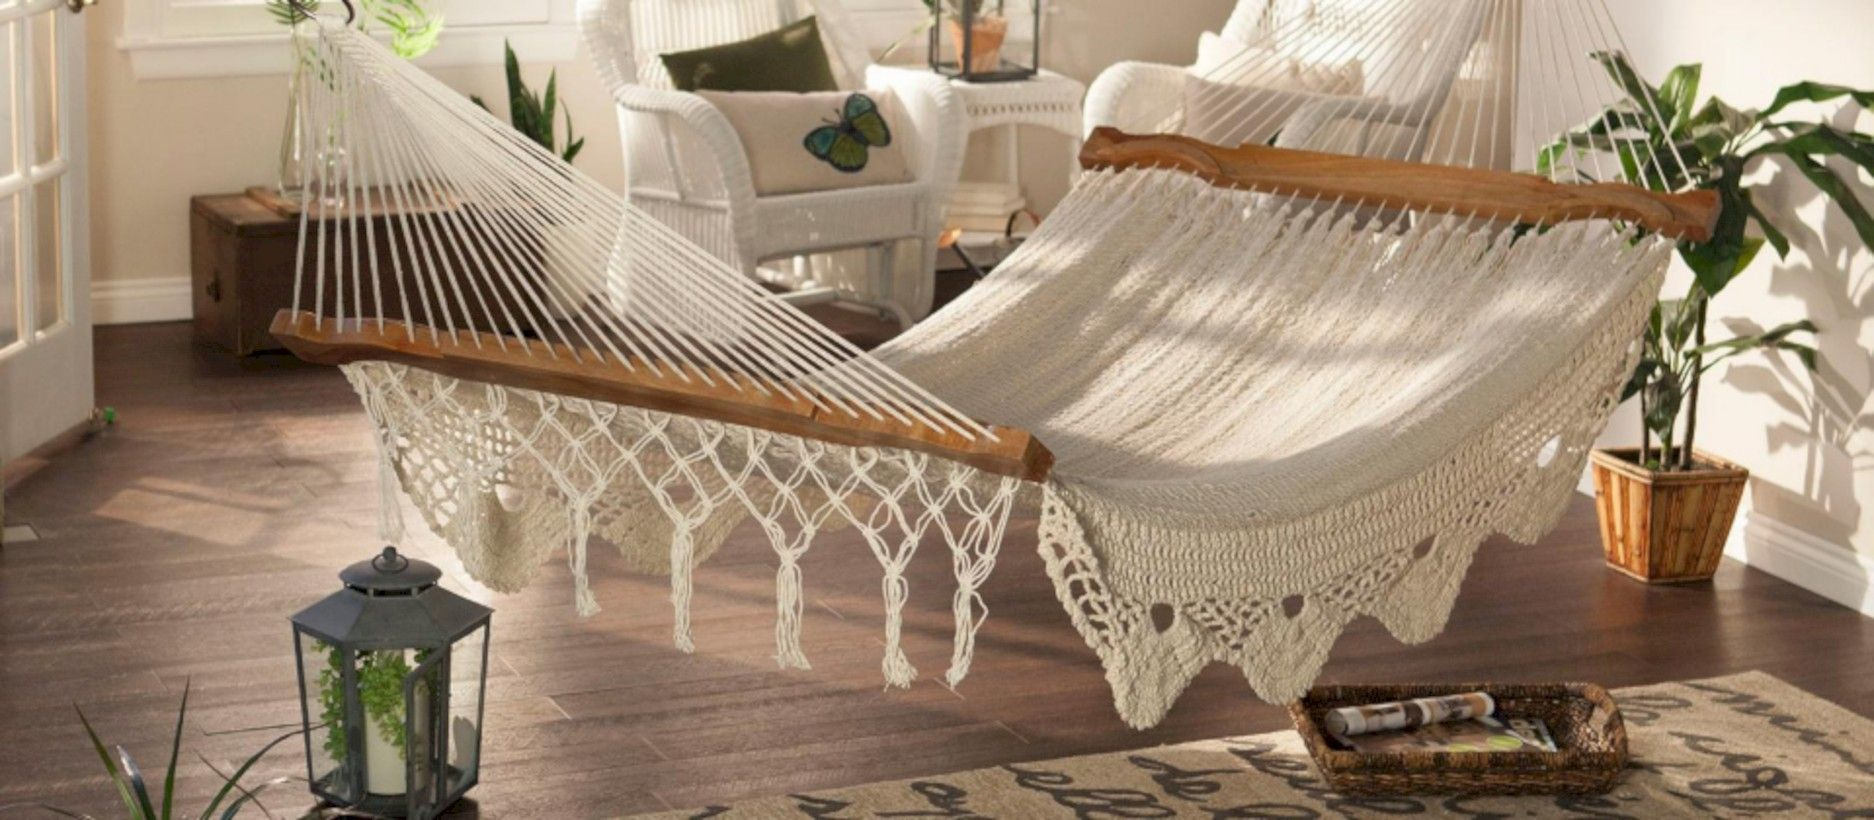 unique hammocks to take a nap furniture ideas and unique